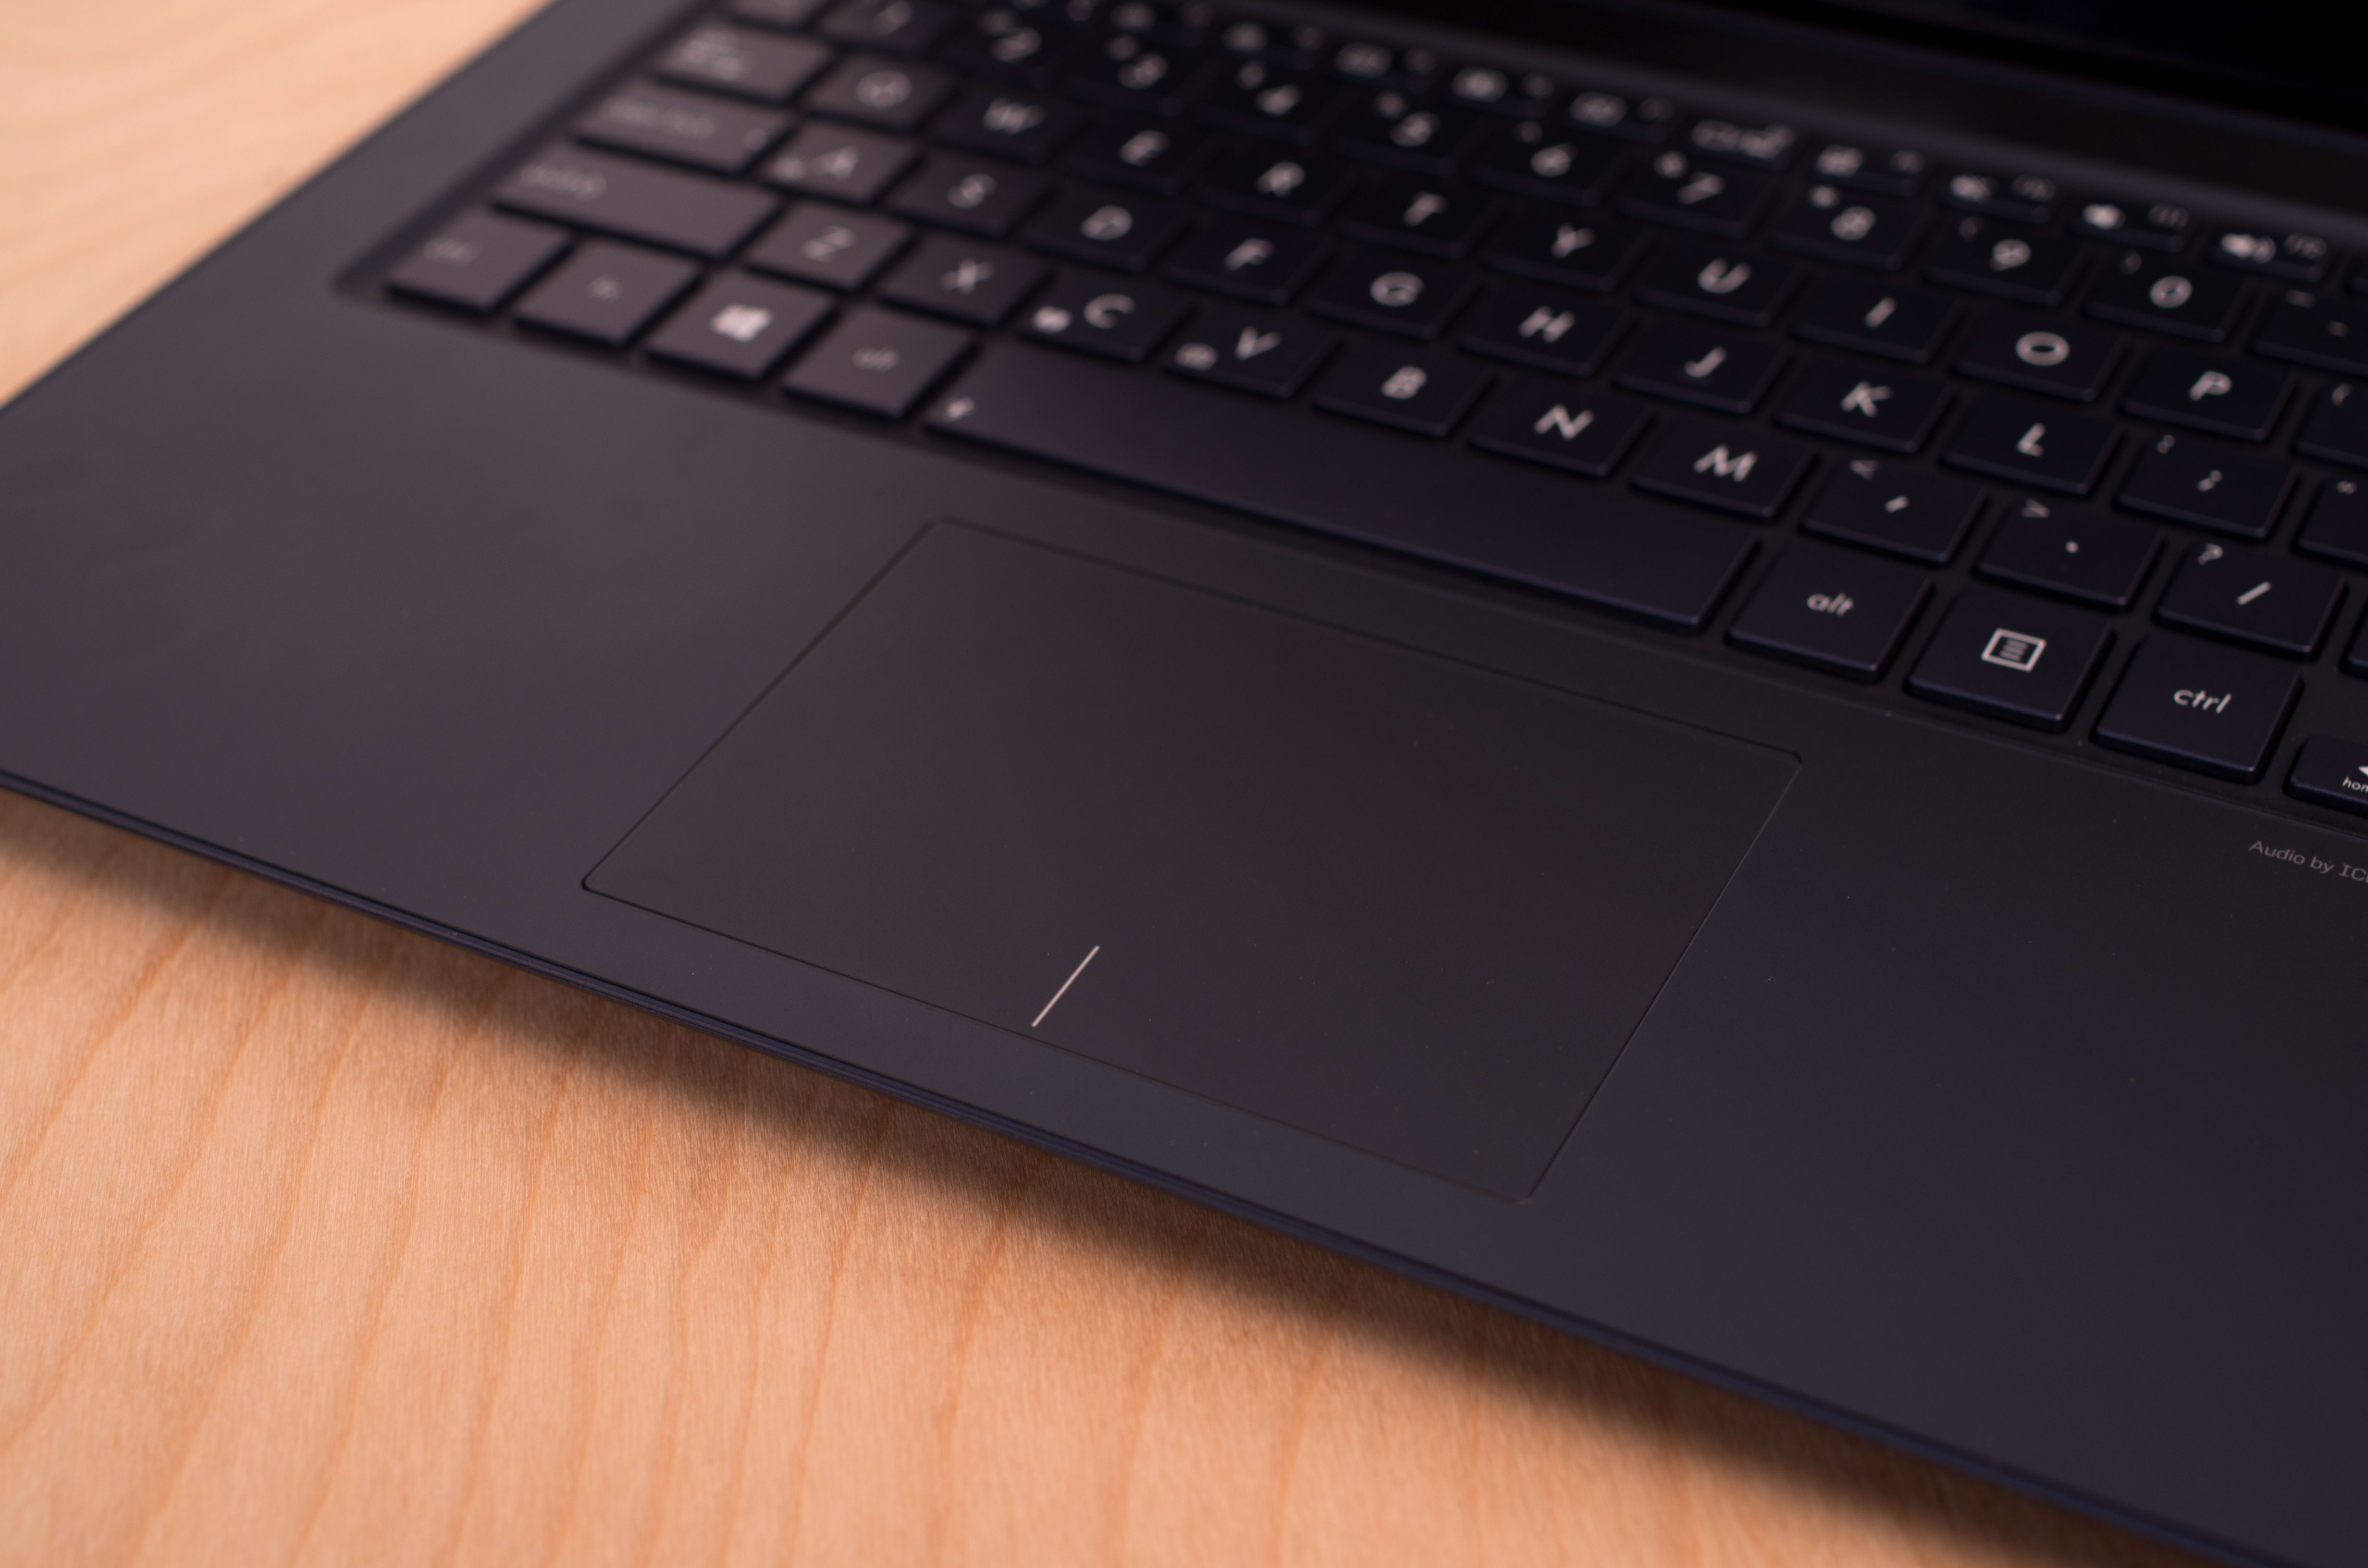 A close-up picture of the Asus UX301L's touchpad.